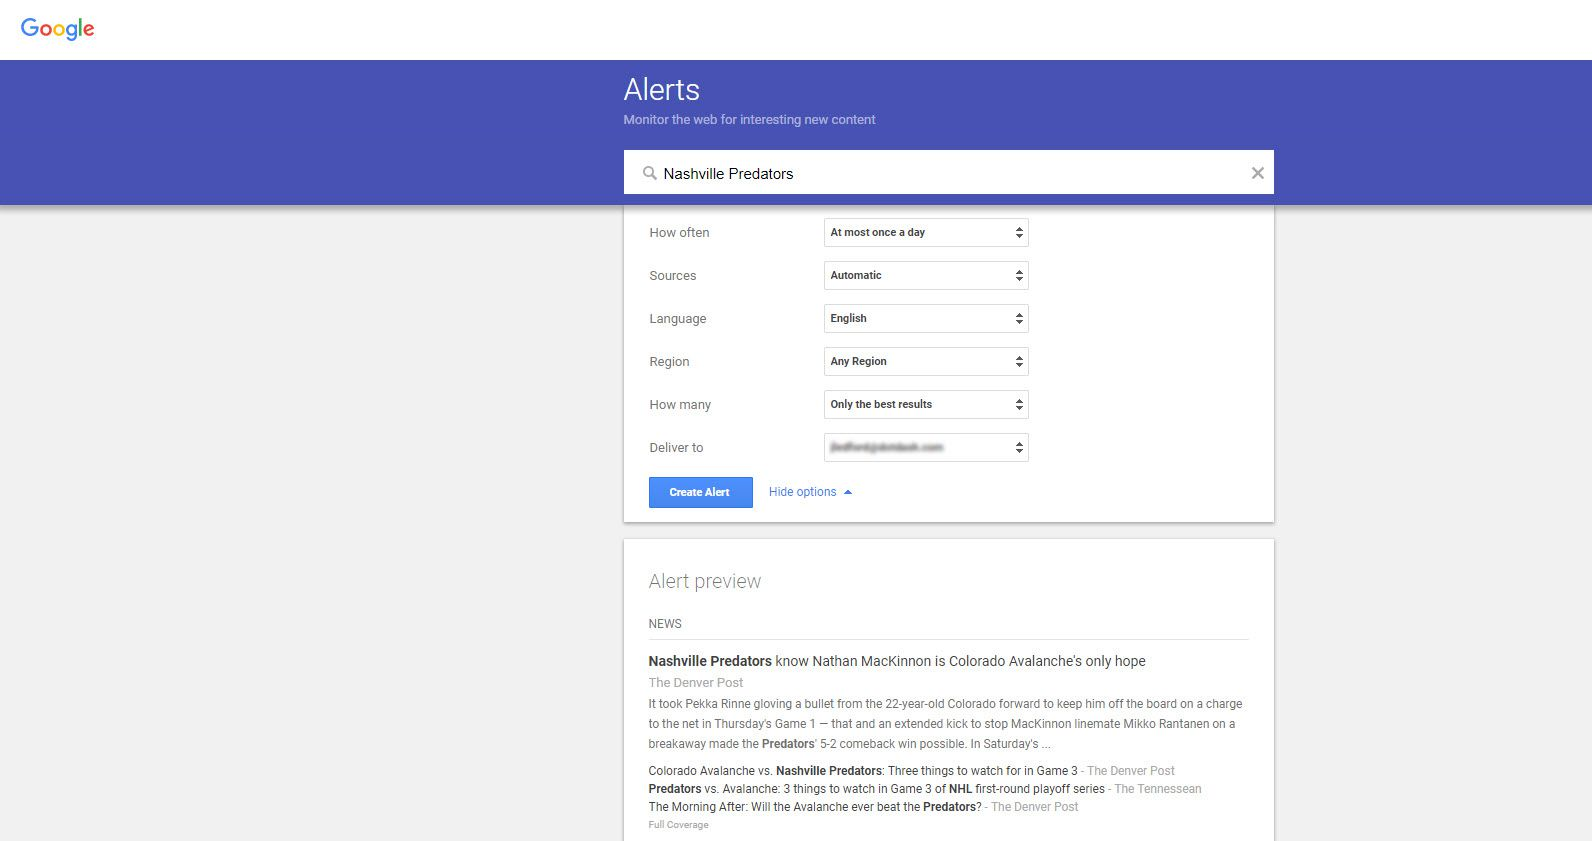 Screenshot of the Google Alerts page showing Alert Options when creating a Google Alert.